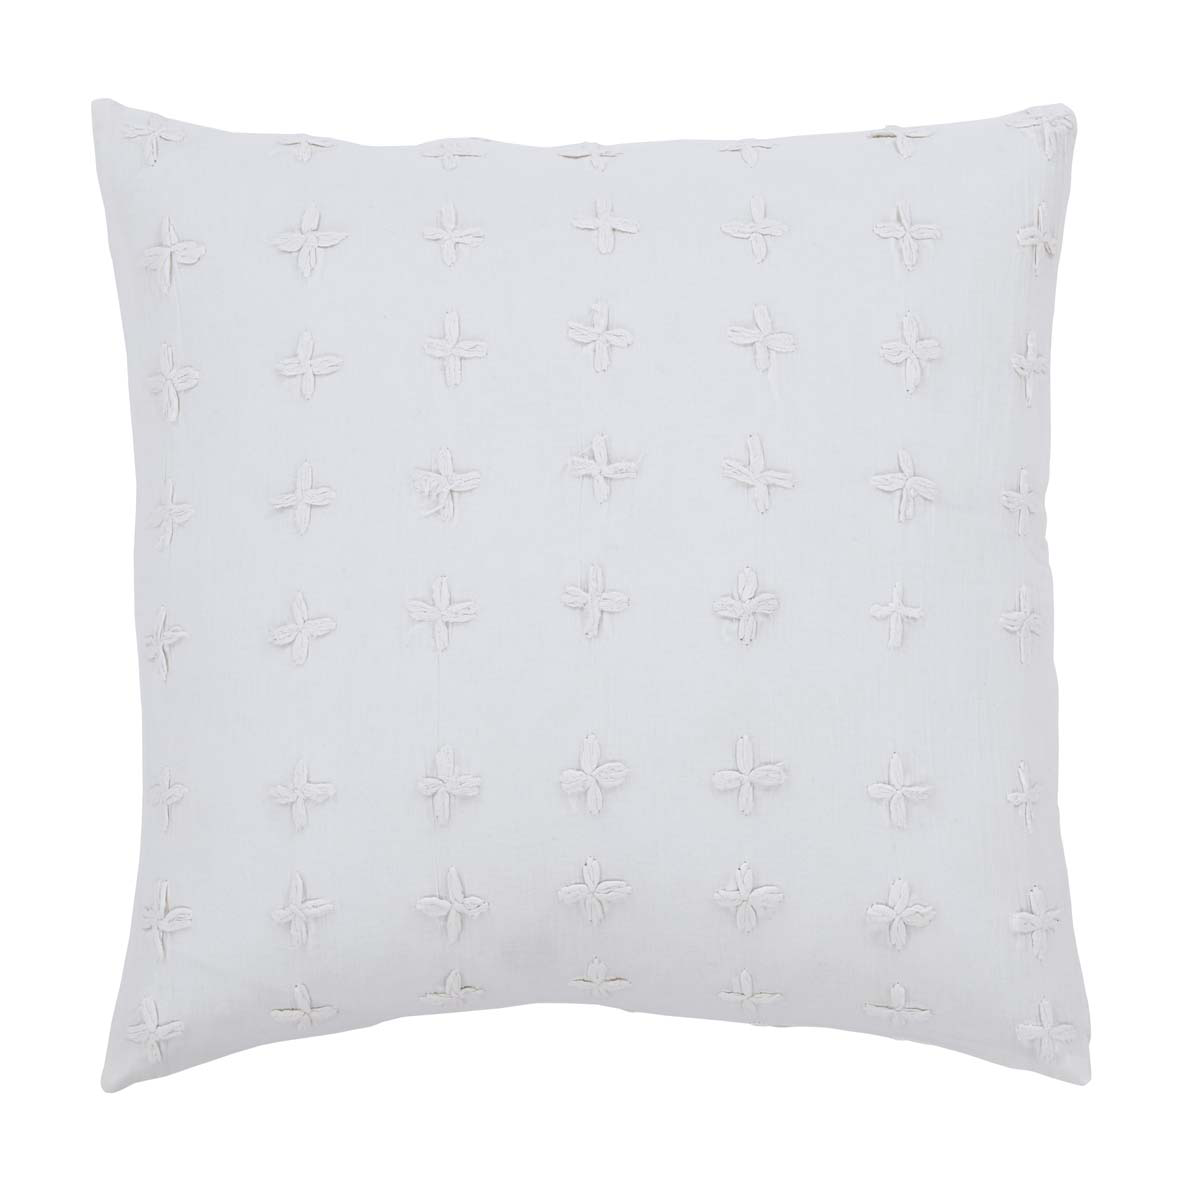 "Willow White Pillow w/Down Fill- 18""x18"" - VHC Brands - Farmhouse Ranch Style"